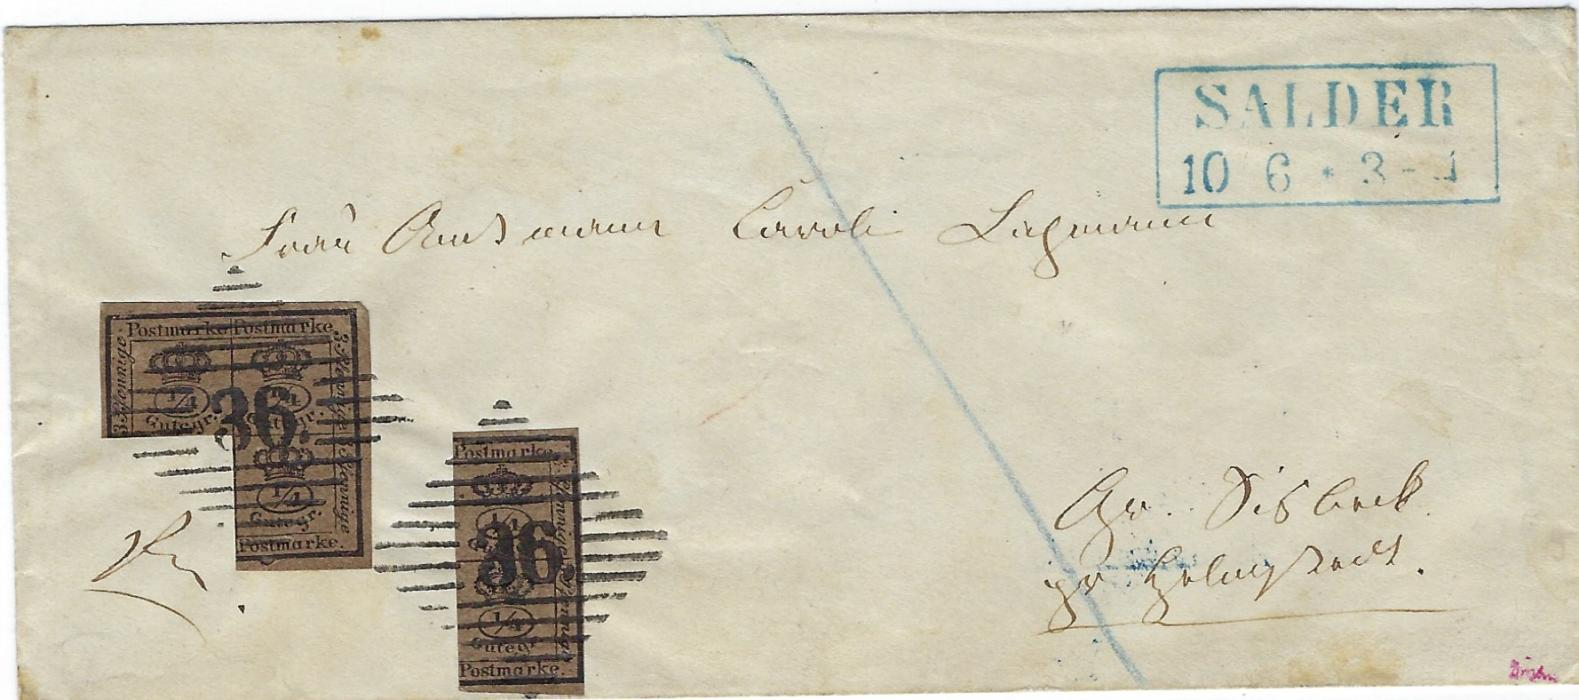 German States (Brunswick) late 1860s cover franked with 1867 pair and block of three ½ Ggr tied by fine clear '36' numerals, framed two-line Salder date stamp, reverse with framed Helmstedt and double-ring Wolfenbuttel date stamp; fine clean condition with Brettl BPP handstamp.